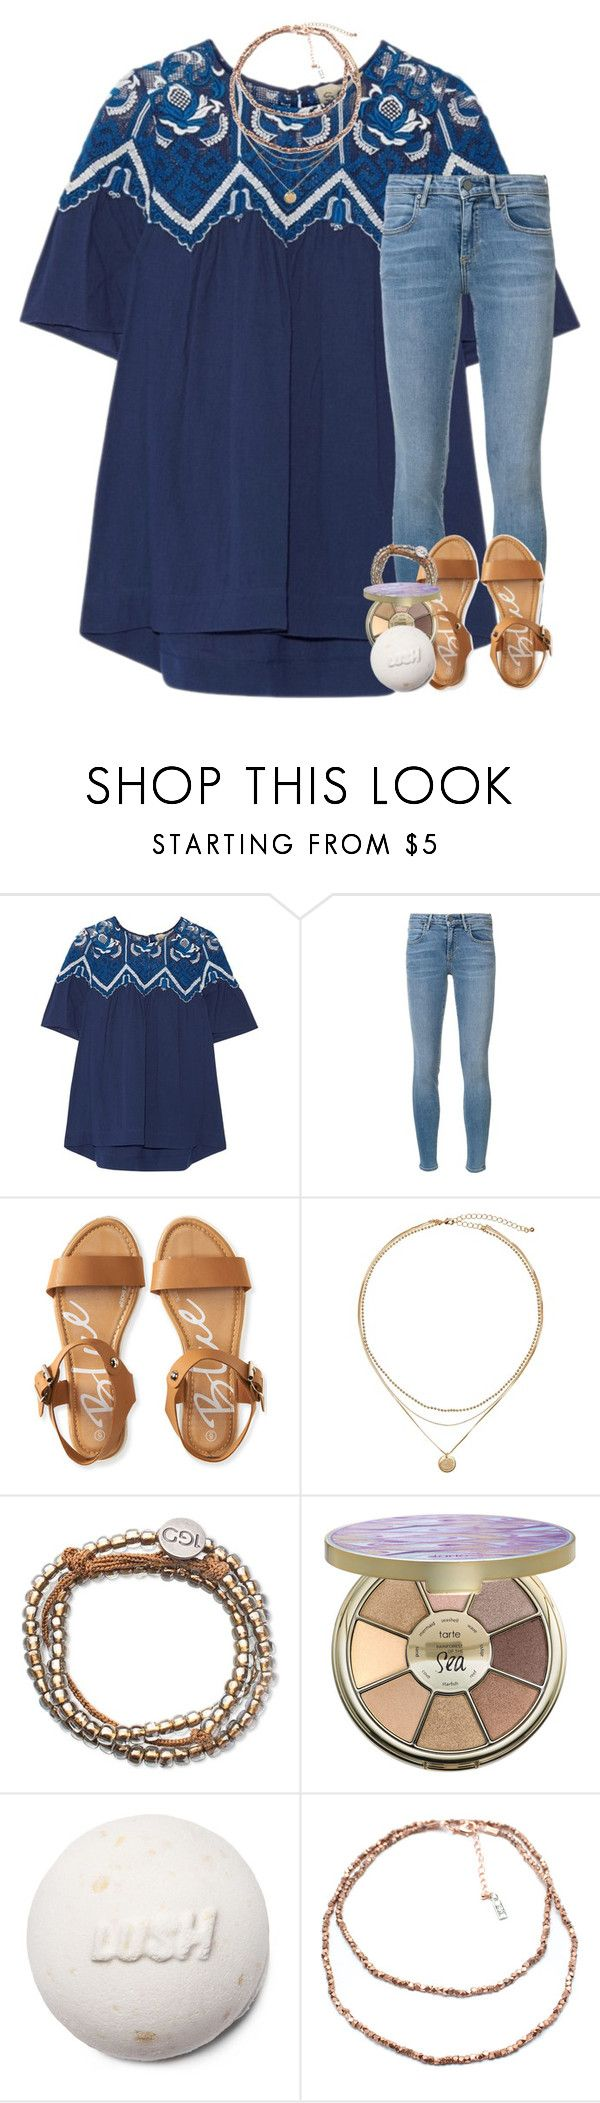 """bet on it / read d"" by elizabethannee ❤ liked on Polyvore featuring Sea, New York, Alexander Wang, Aéropostale, 100 Good Deeds, tarte and Child Of Wild"